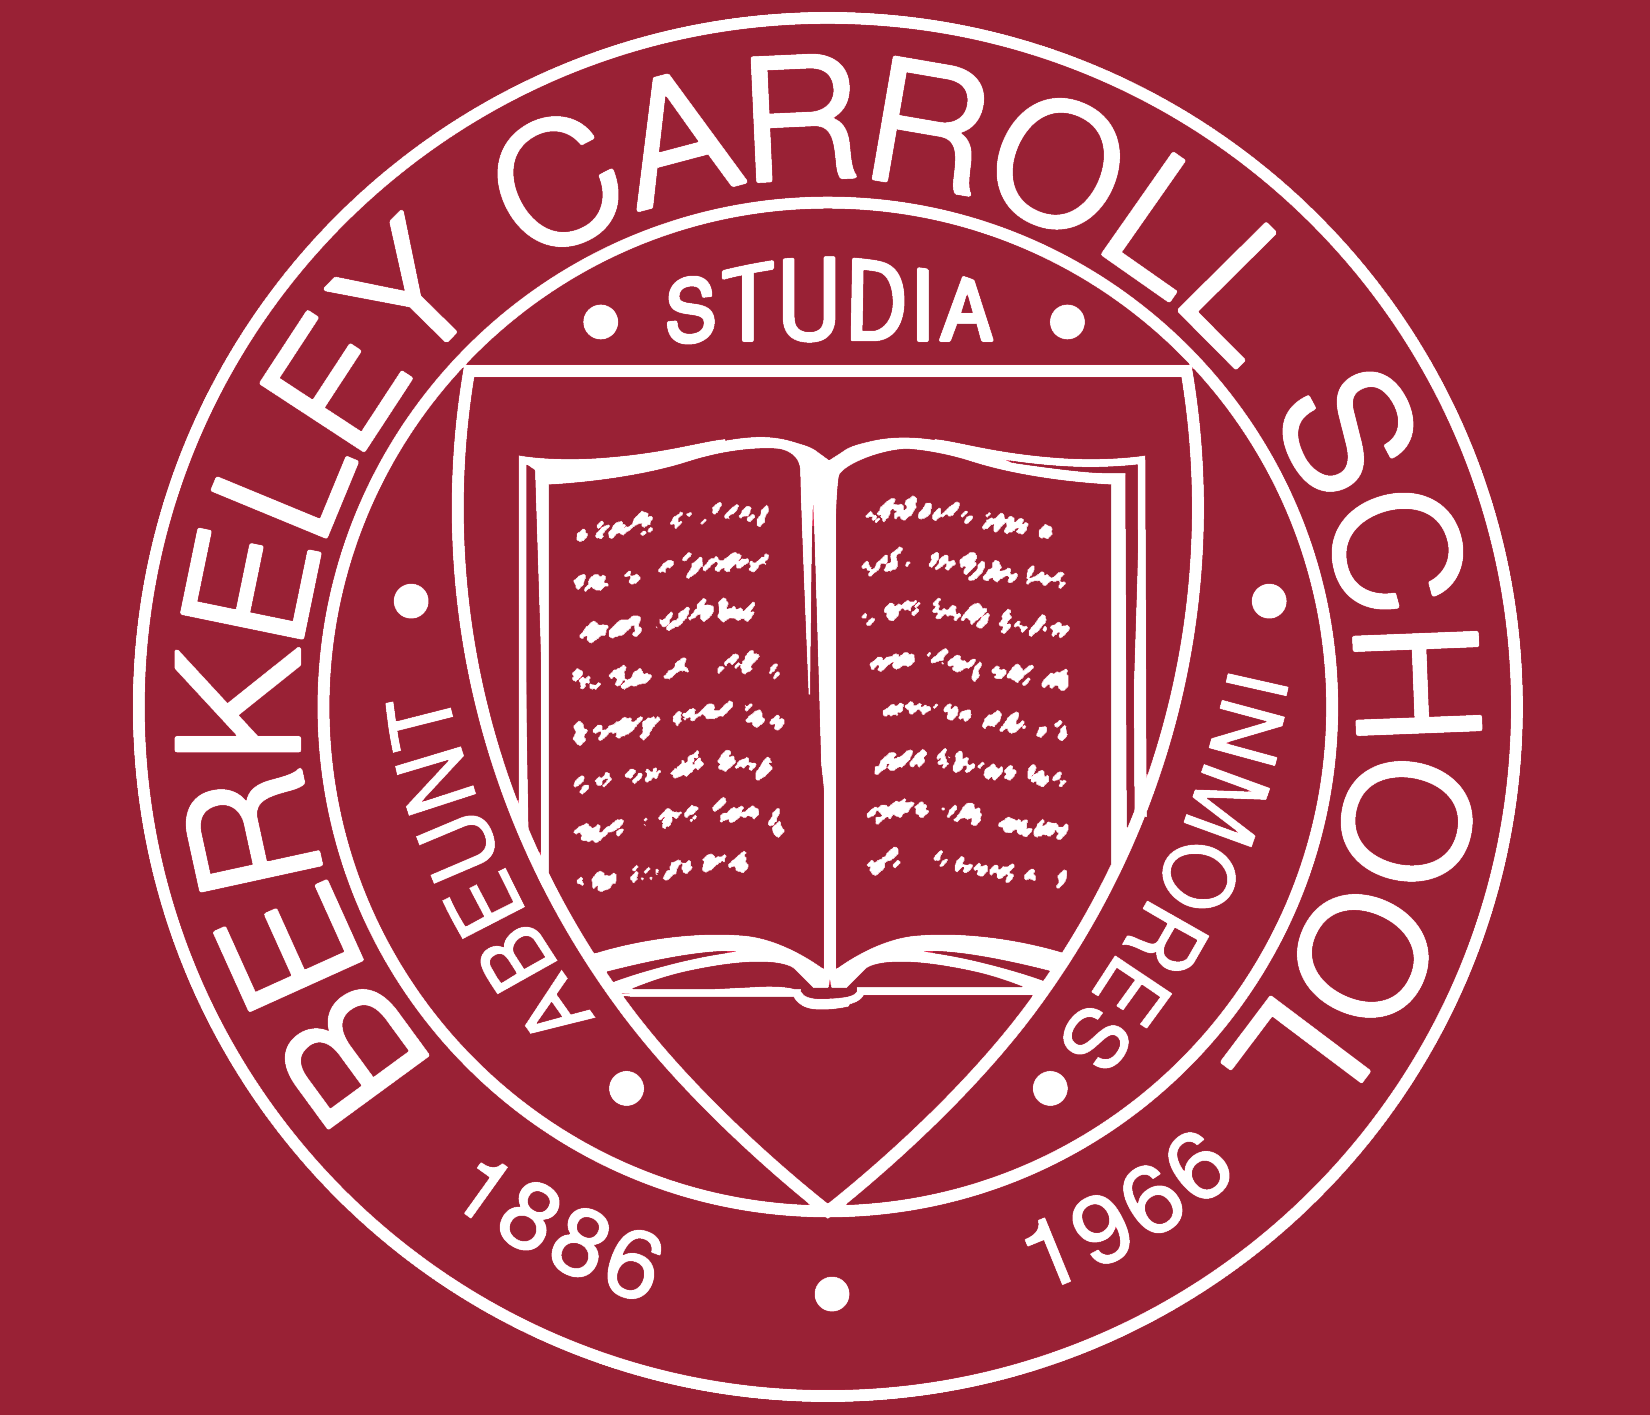 berkeley carroll.png